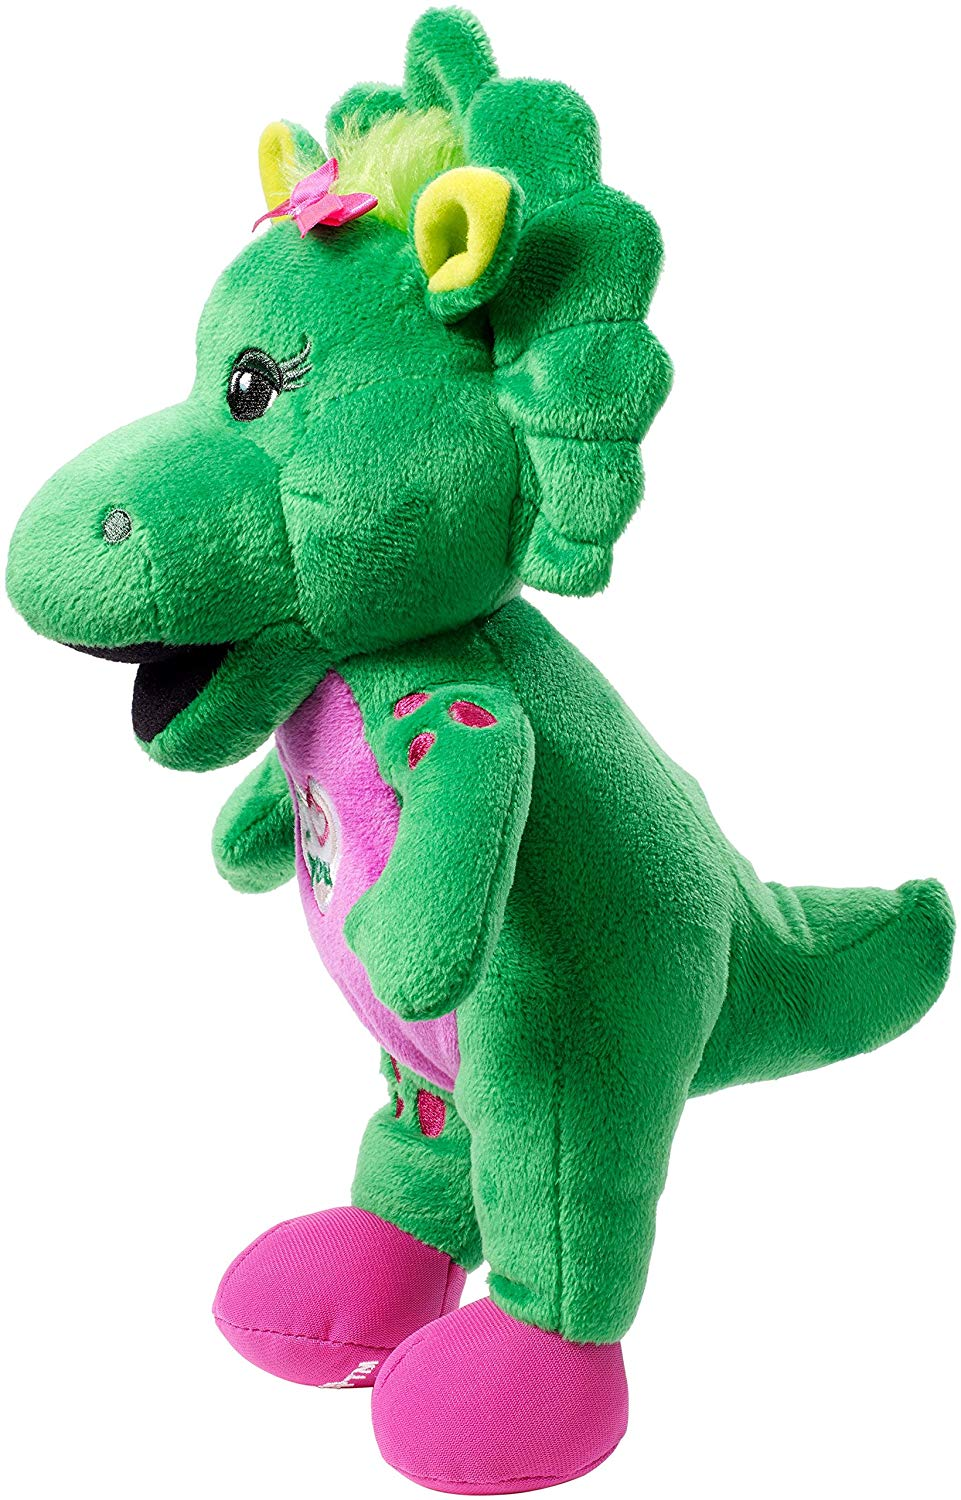 Baby Bop Plush - Fisher-Price Barney, I Love You